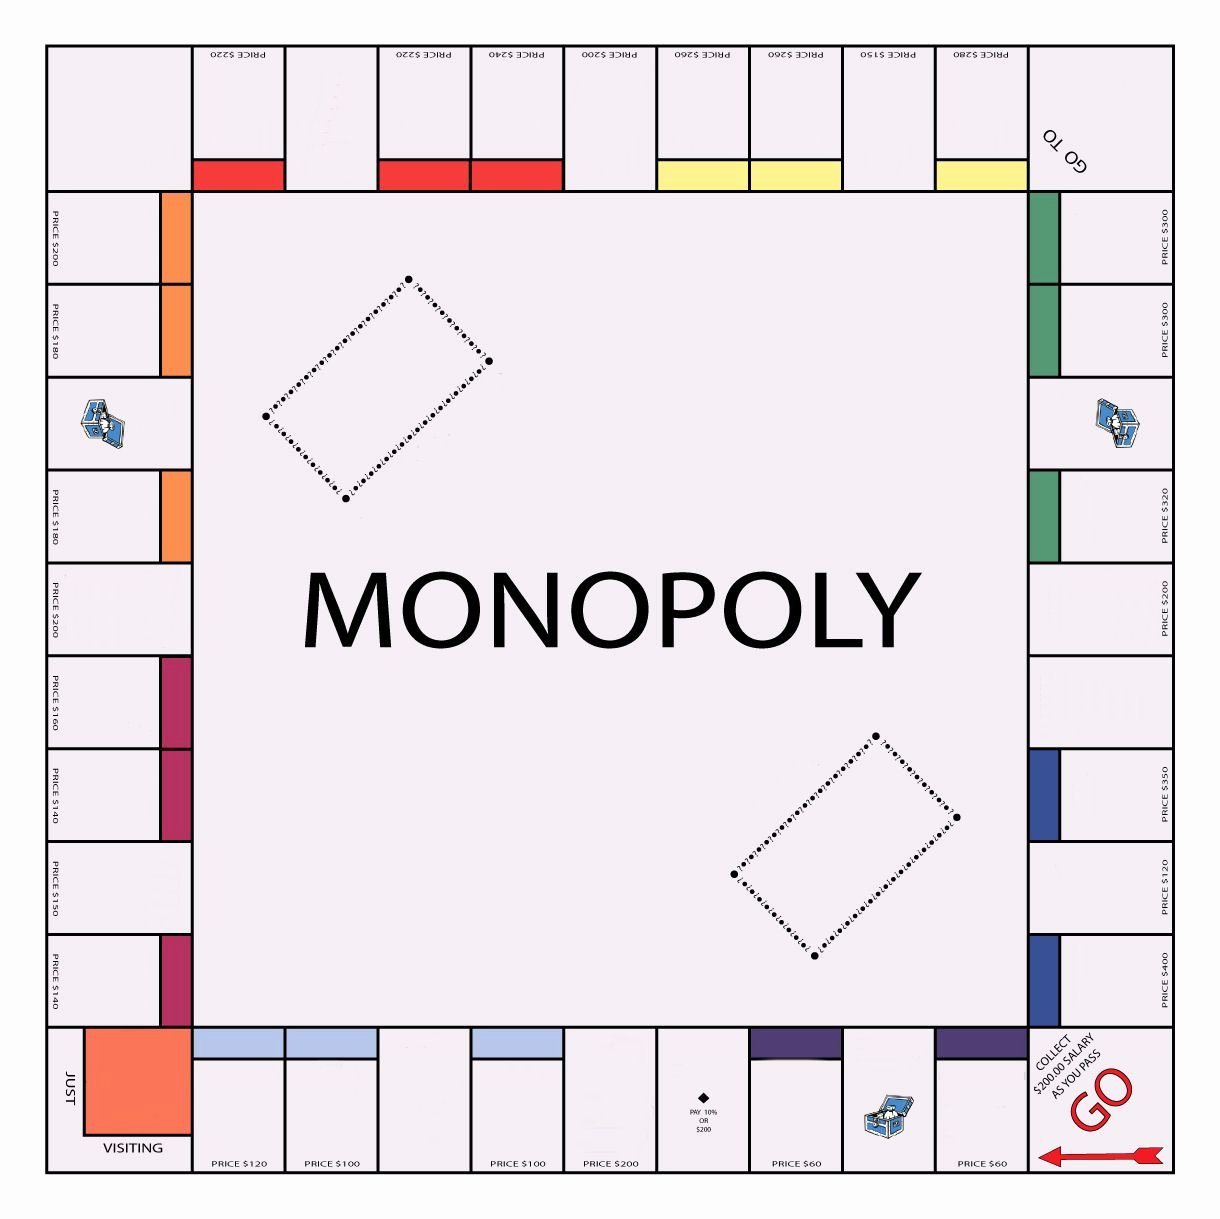 Monopoly Game Board Layout Lovely if You Were to Make A Monopoly Board